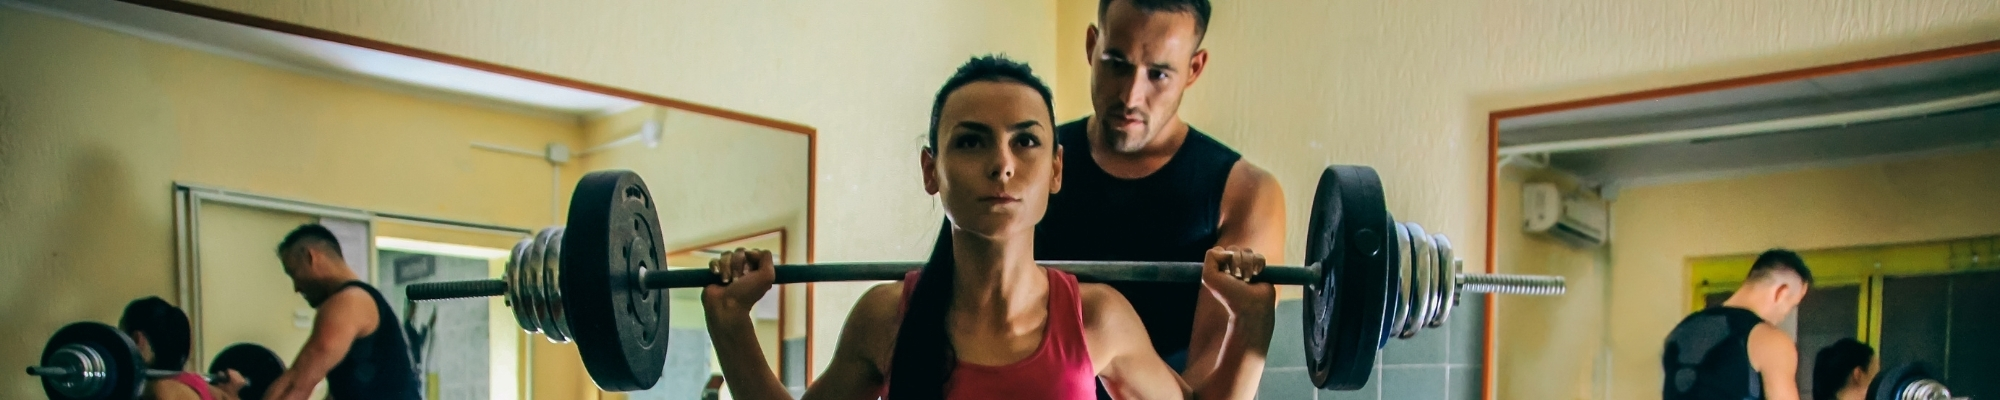 Personal Trainers and Insurance